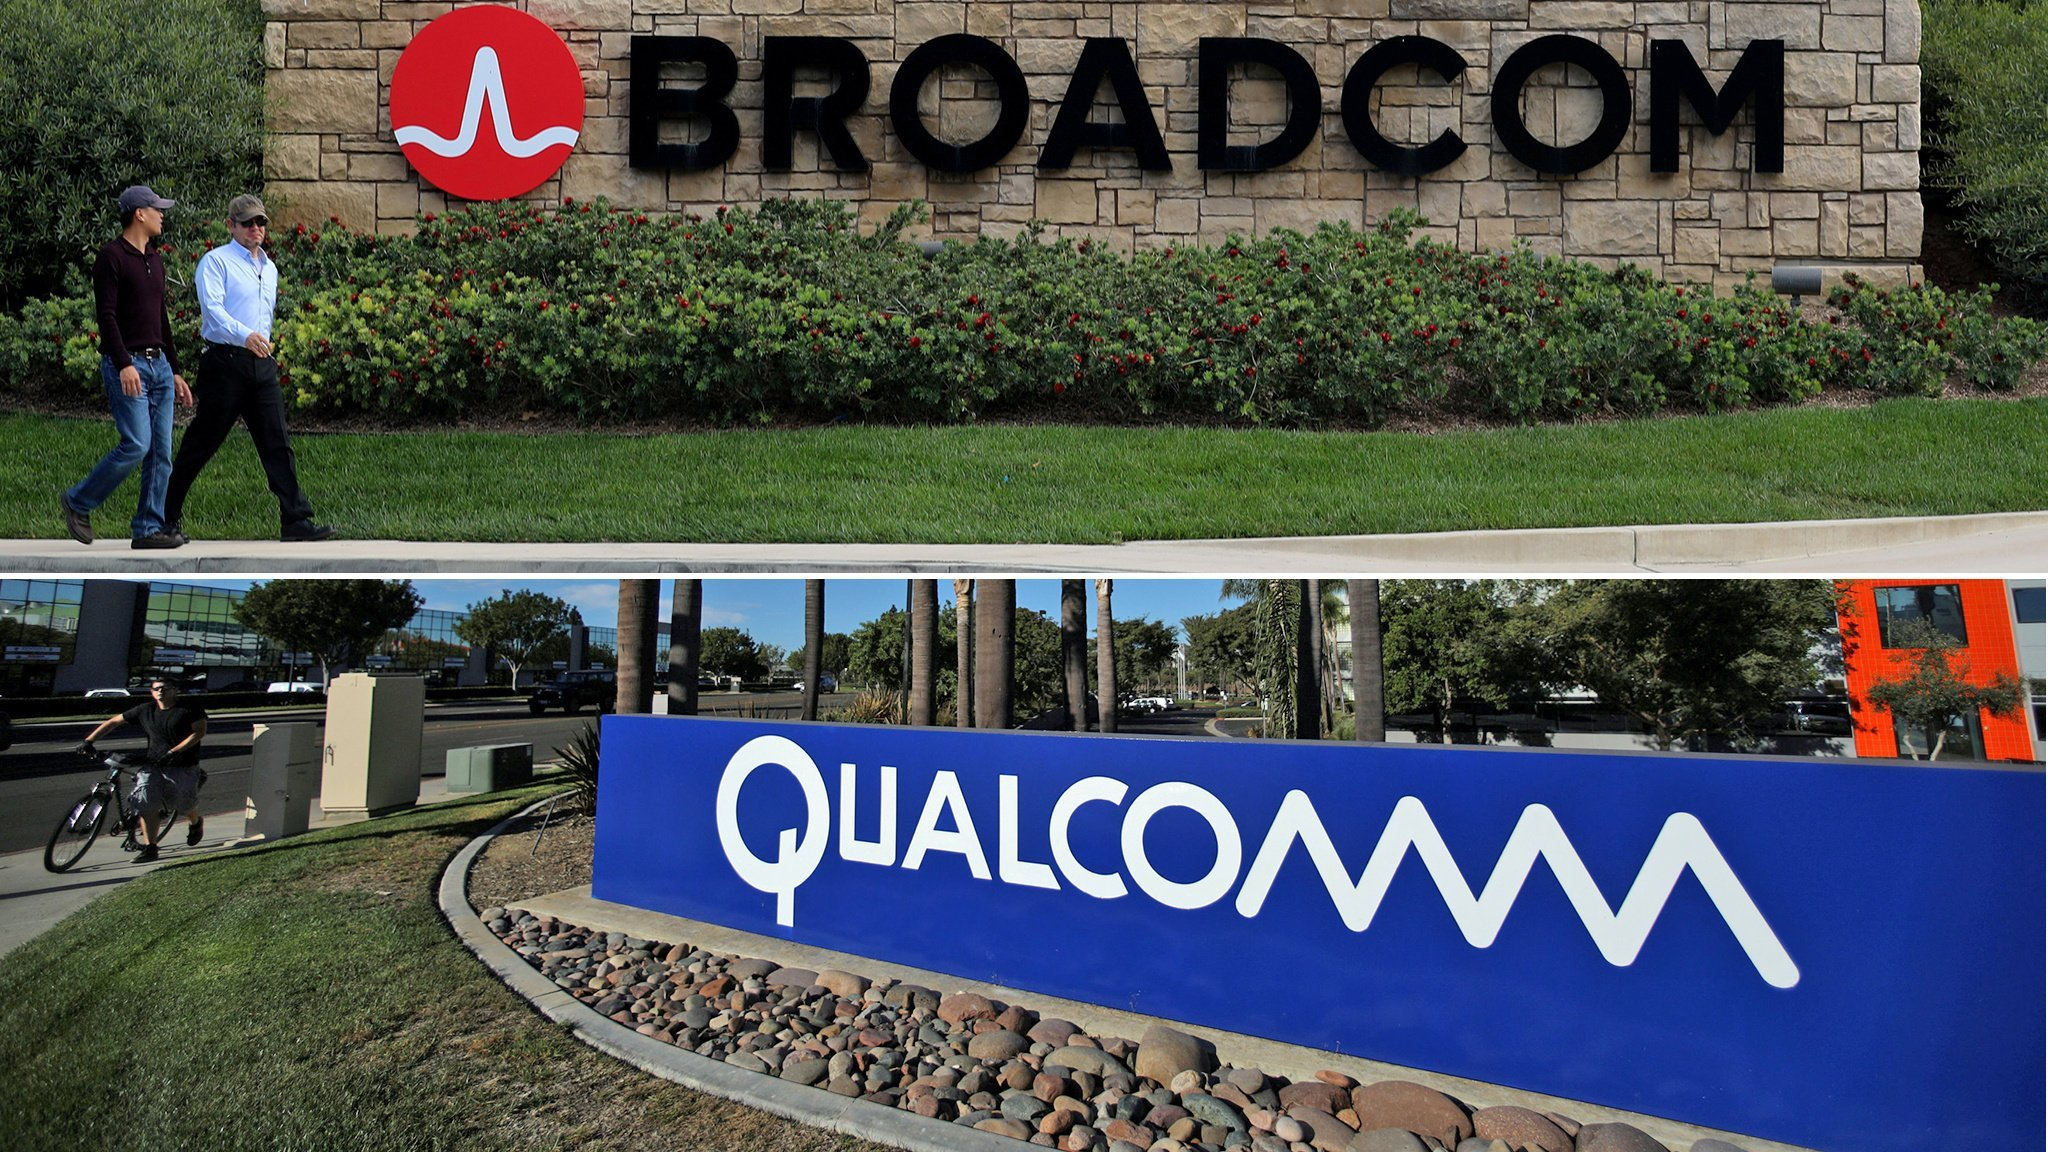 Broadcom offers Qualcomm $8bn break-up fee if deal fails